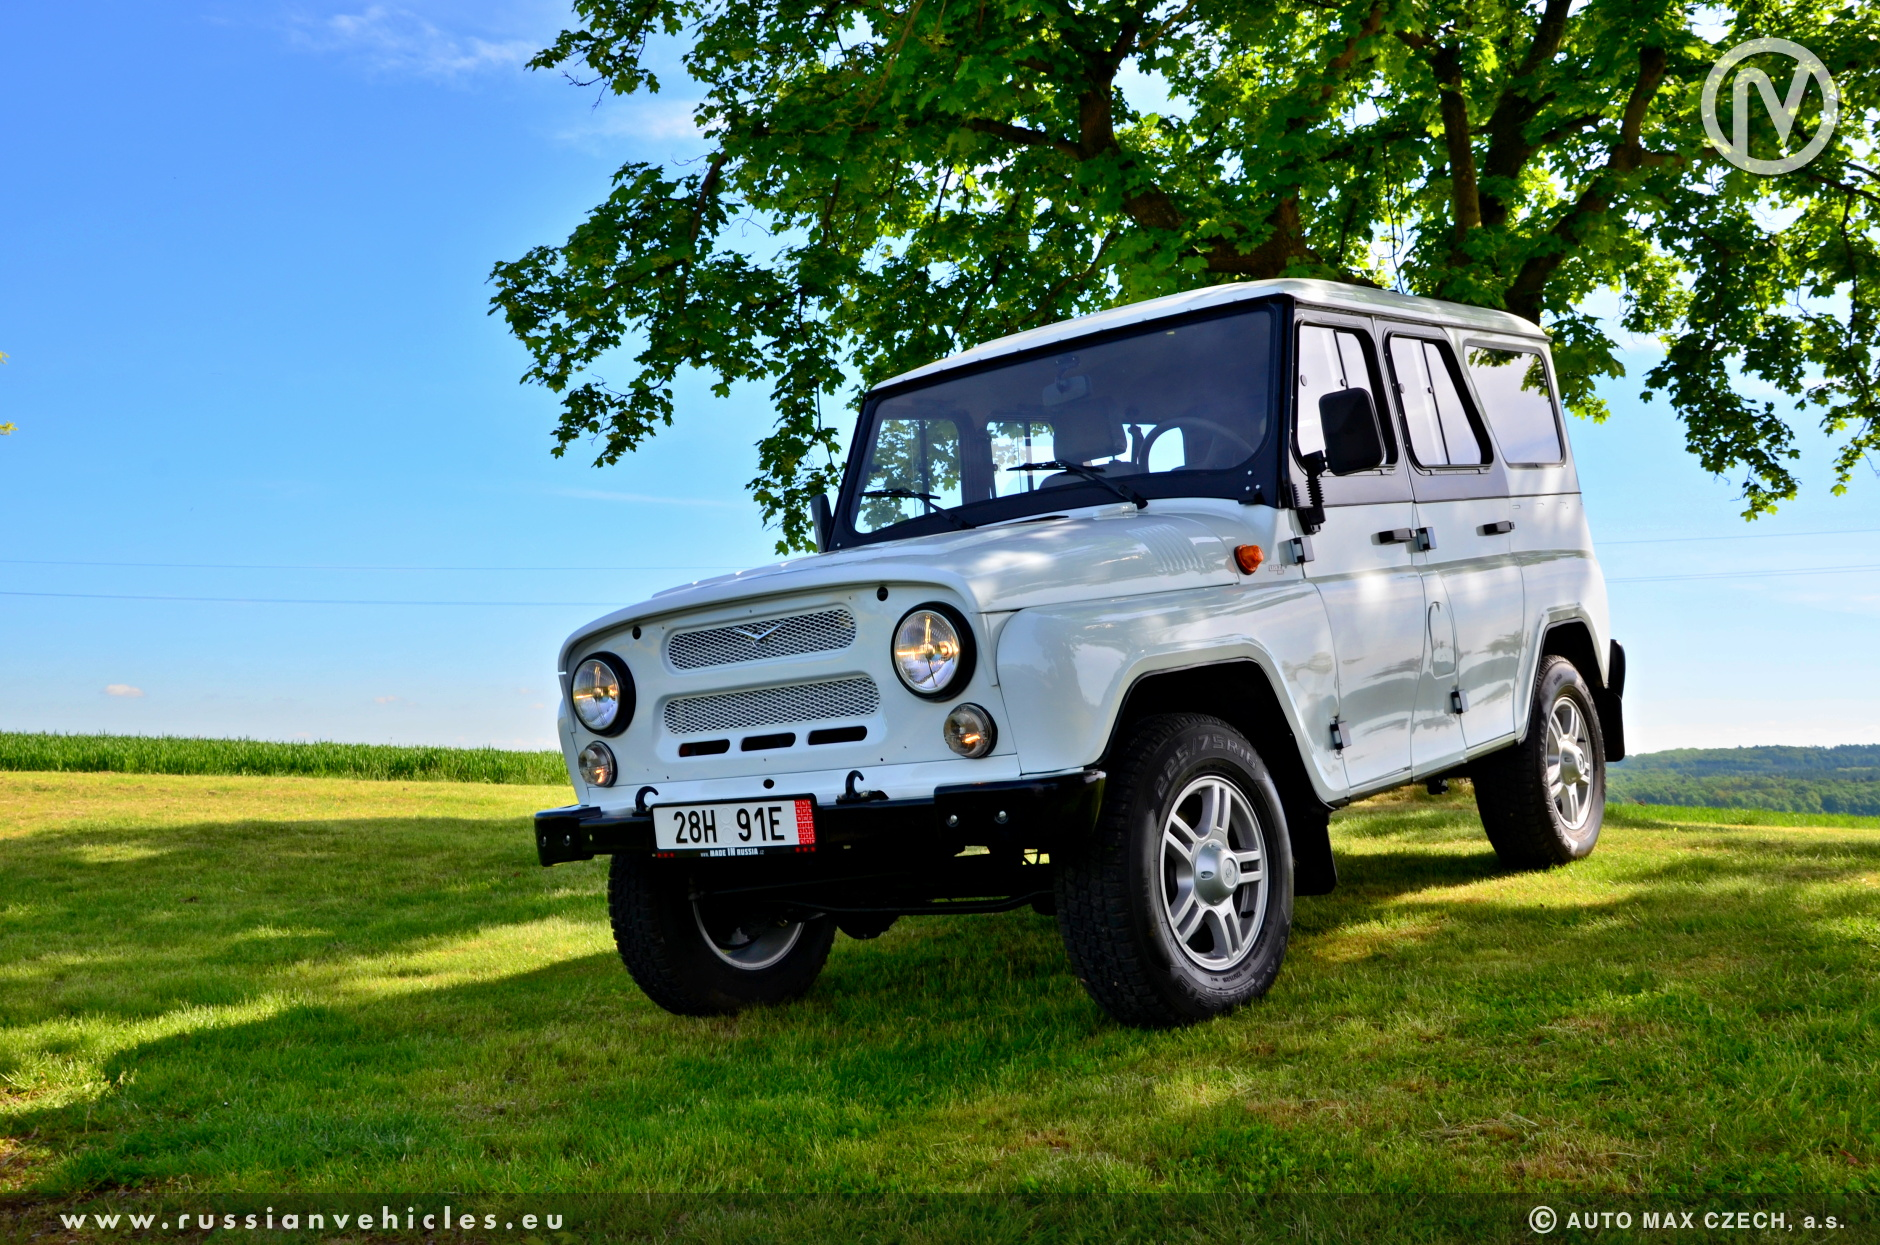 When will the UAZ-Patriot with automatic transmission 4